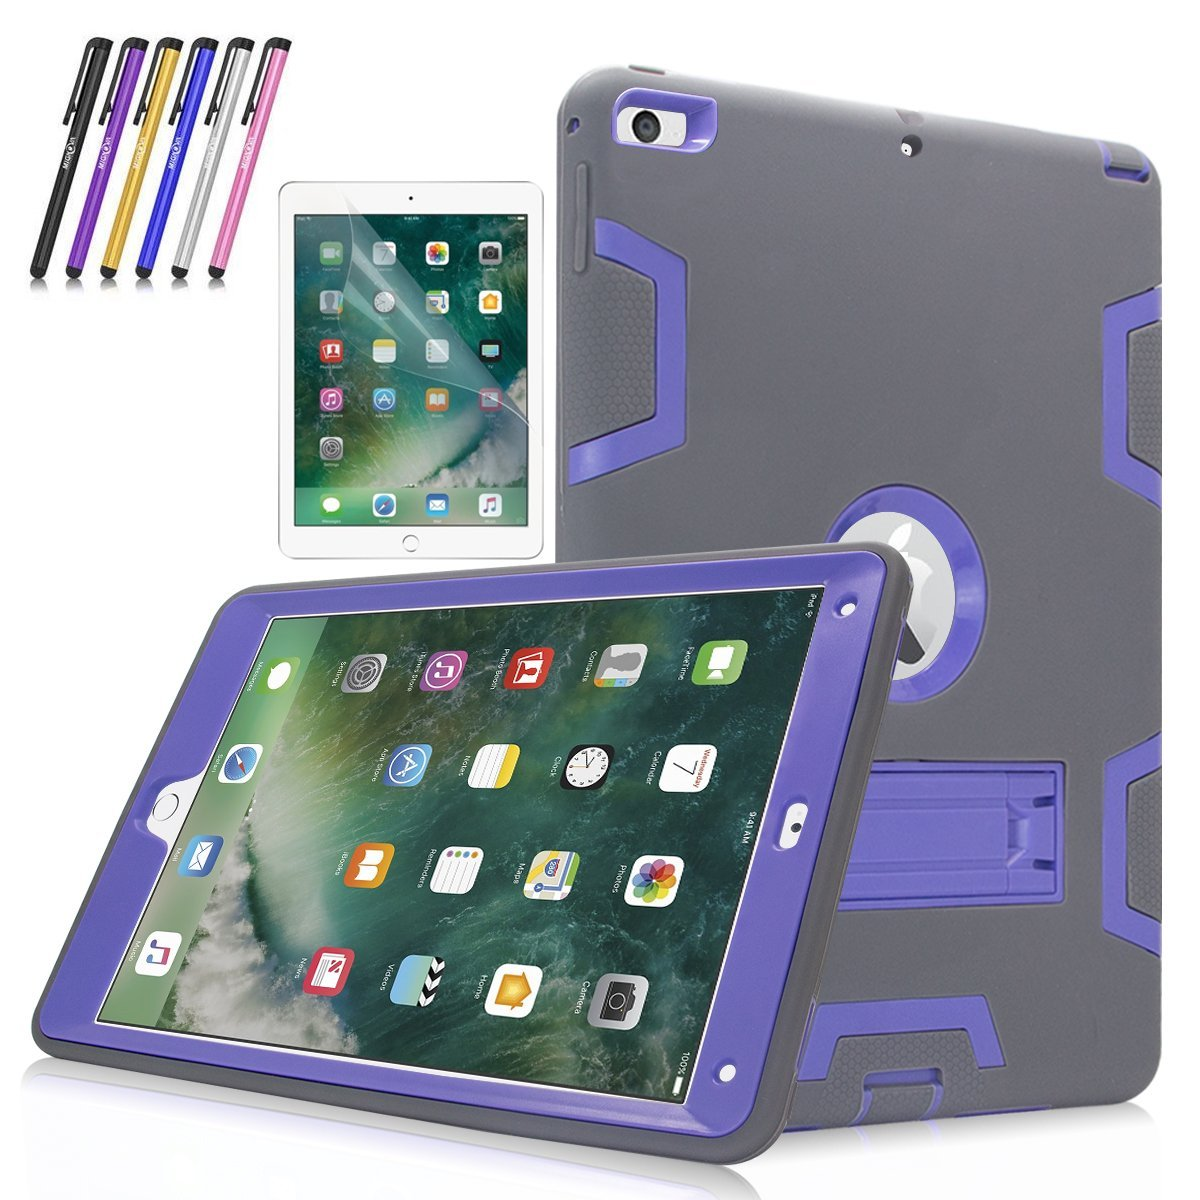 """New iPad 9.7""""Case, Mignova Heavy Duty rugged Hybrid Protective Case with Build In Kickstand For iPad 5th 6th Generation 2017/2018 A1822/A1823 + Screen Protector Film and Stylus Pen (Gray / Purple)"""